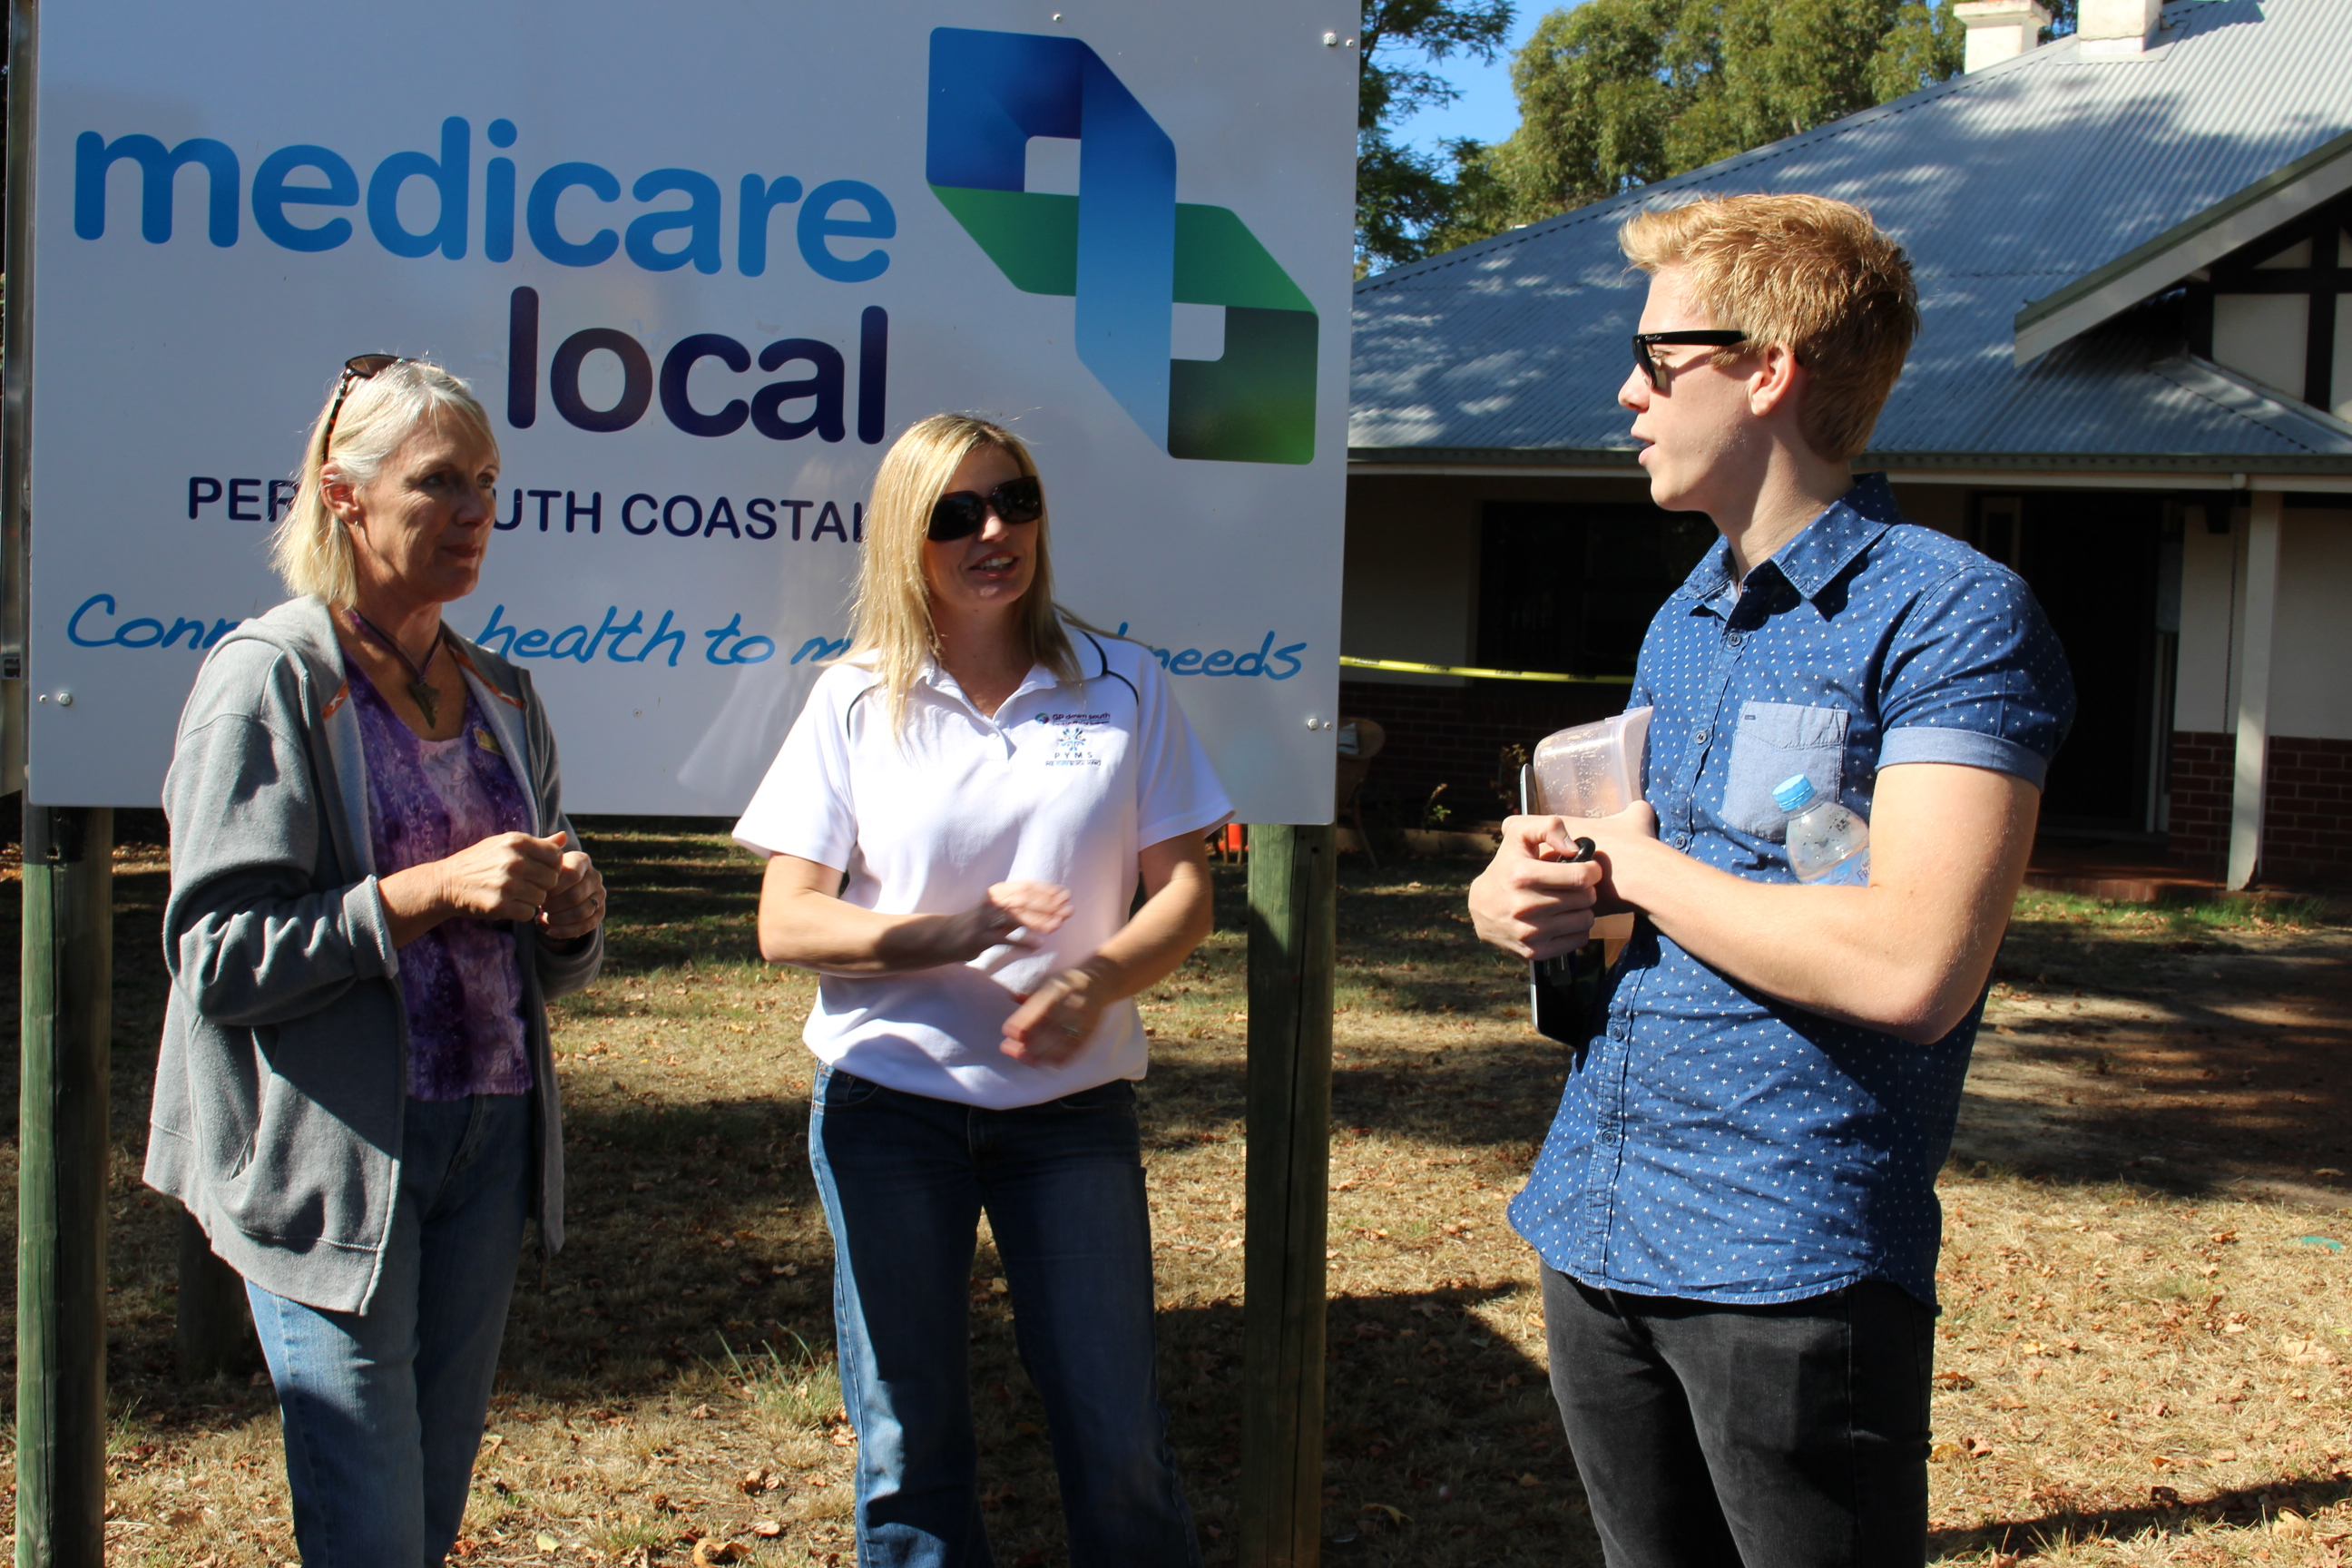 Chatting to the community at Perth South Coastal Medicare Local office.